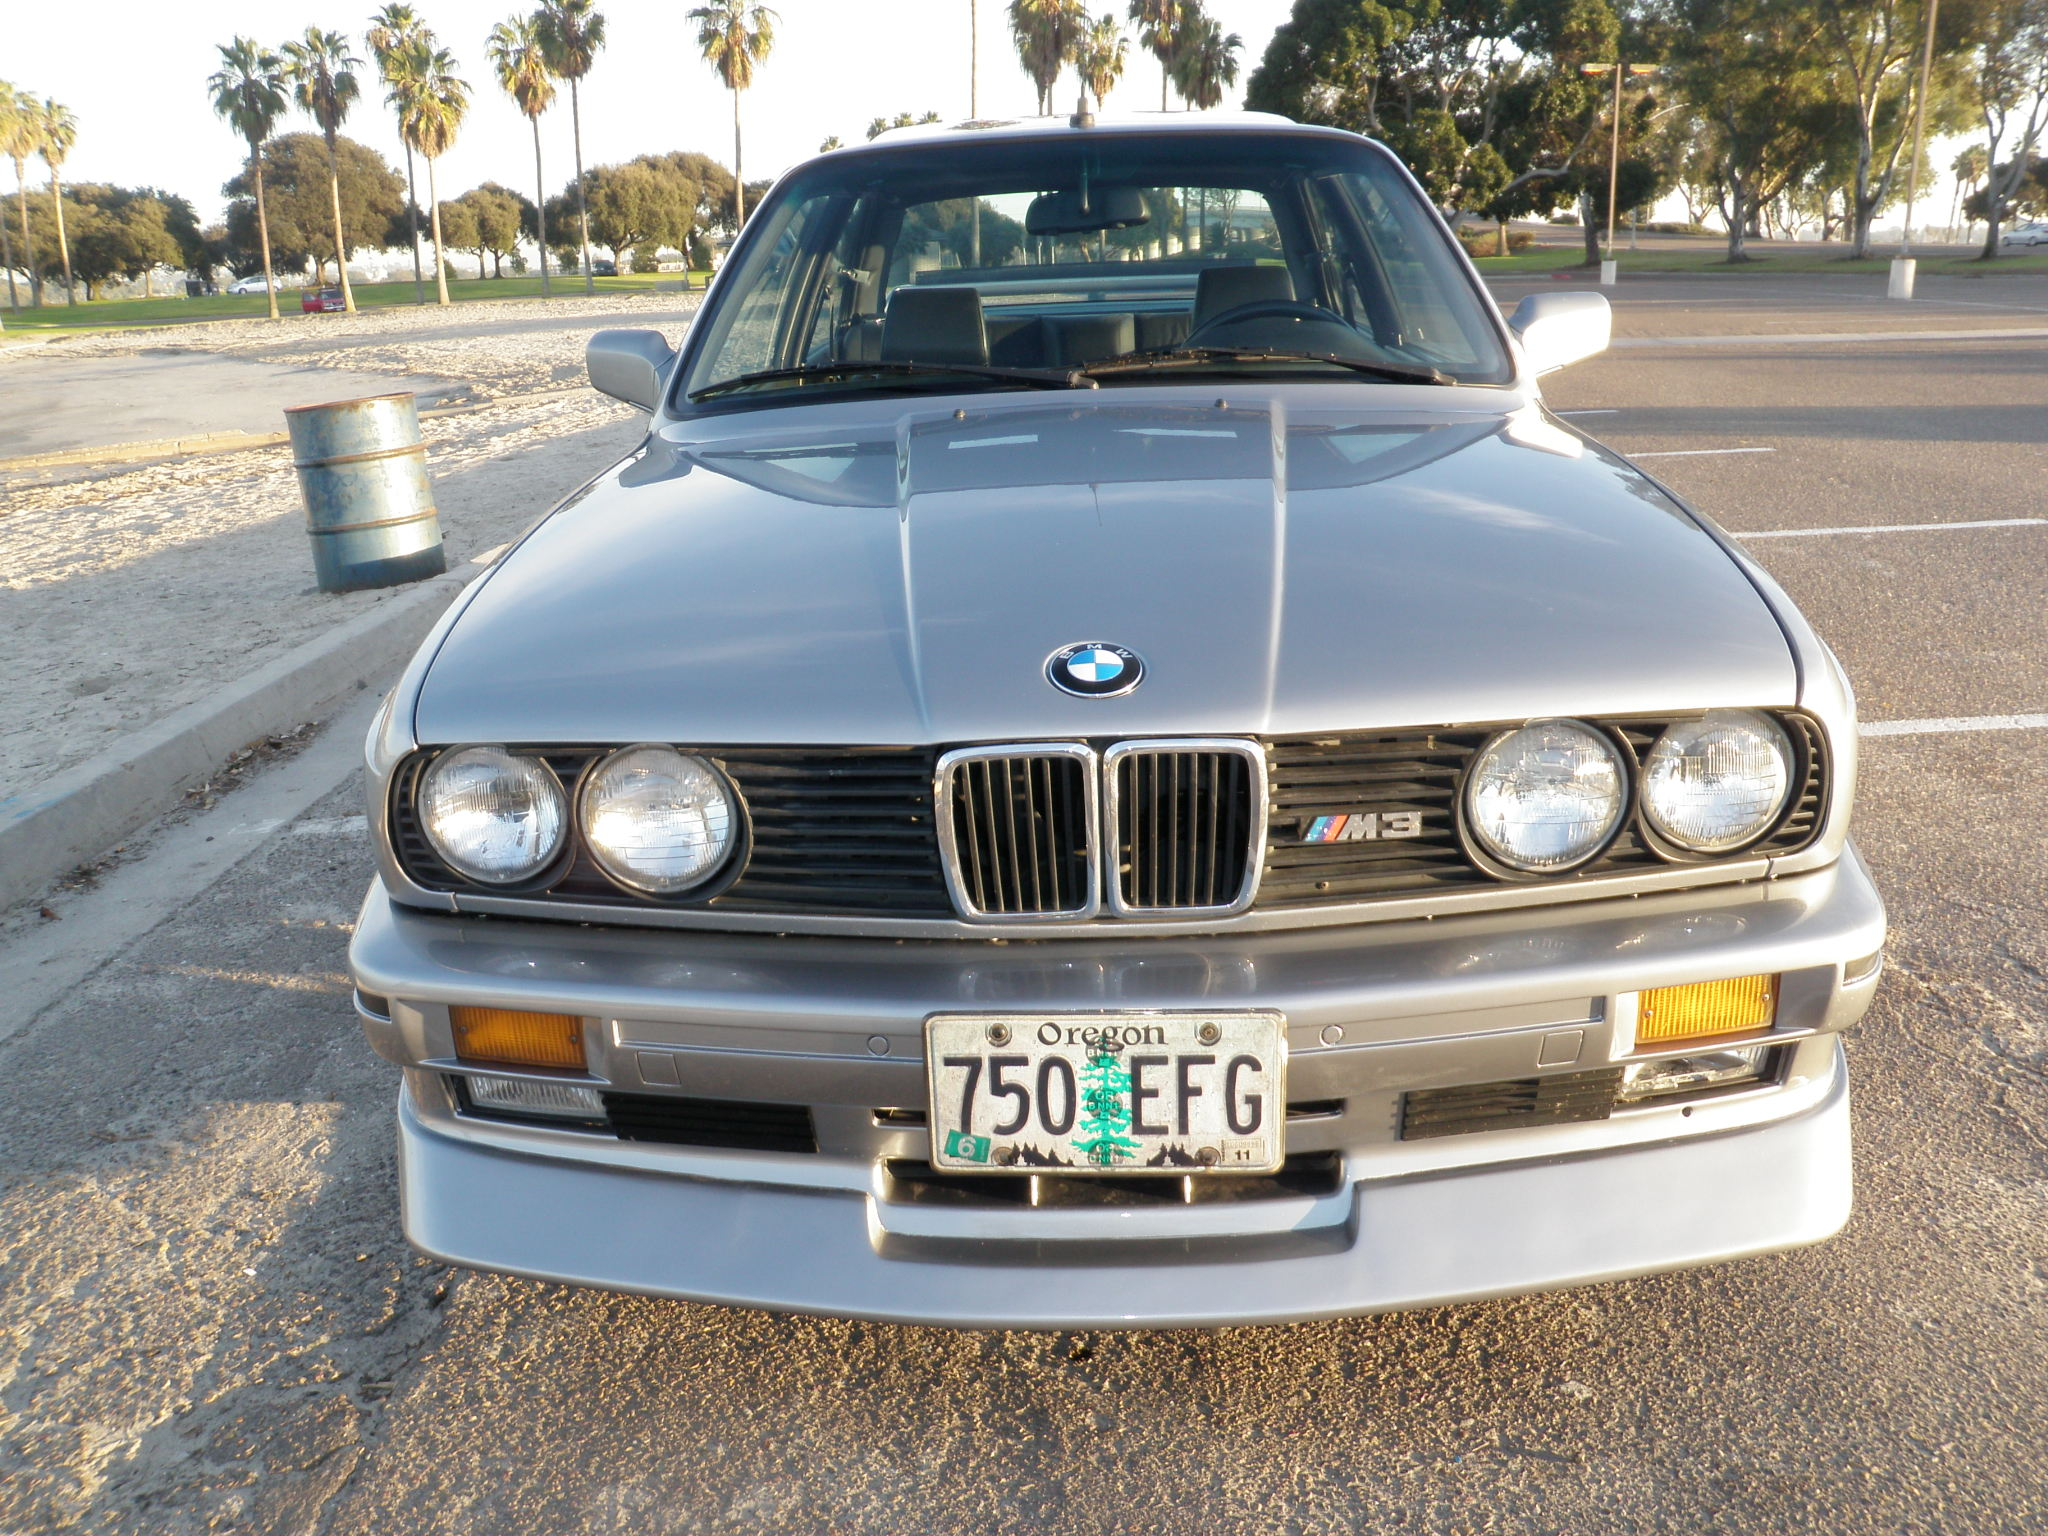 Hummers For Sale >> For Sale —-1988 e30 BMW M3 with Blue-Printed LS6 V8 Engine